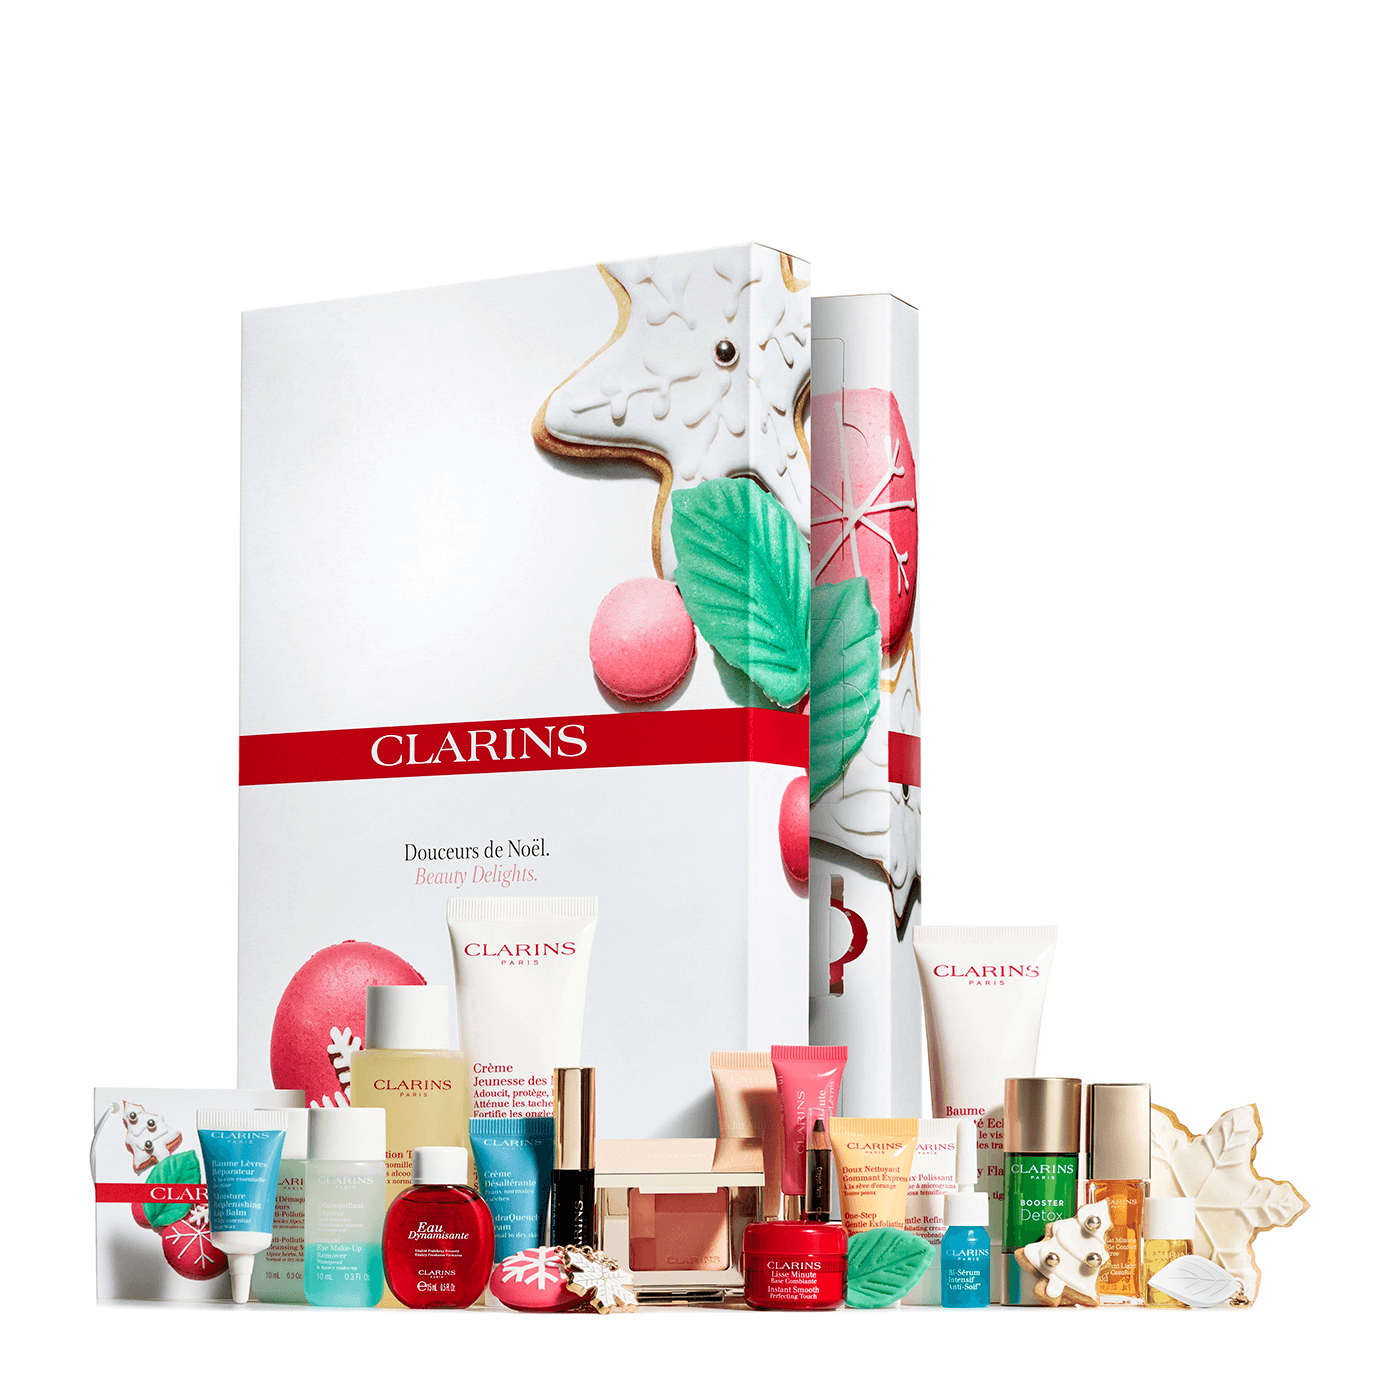 Clarins Holiday Glow Getters Beauty Advent Calendar Available Now!